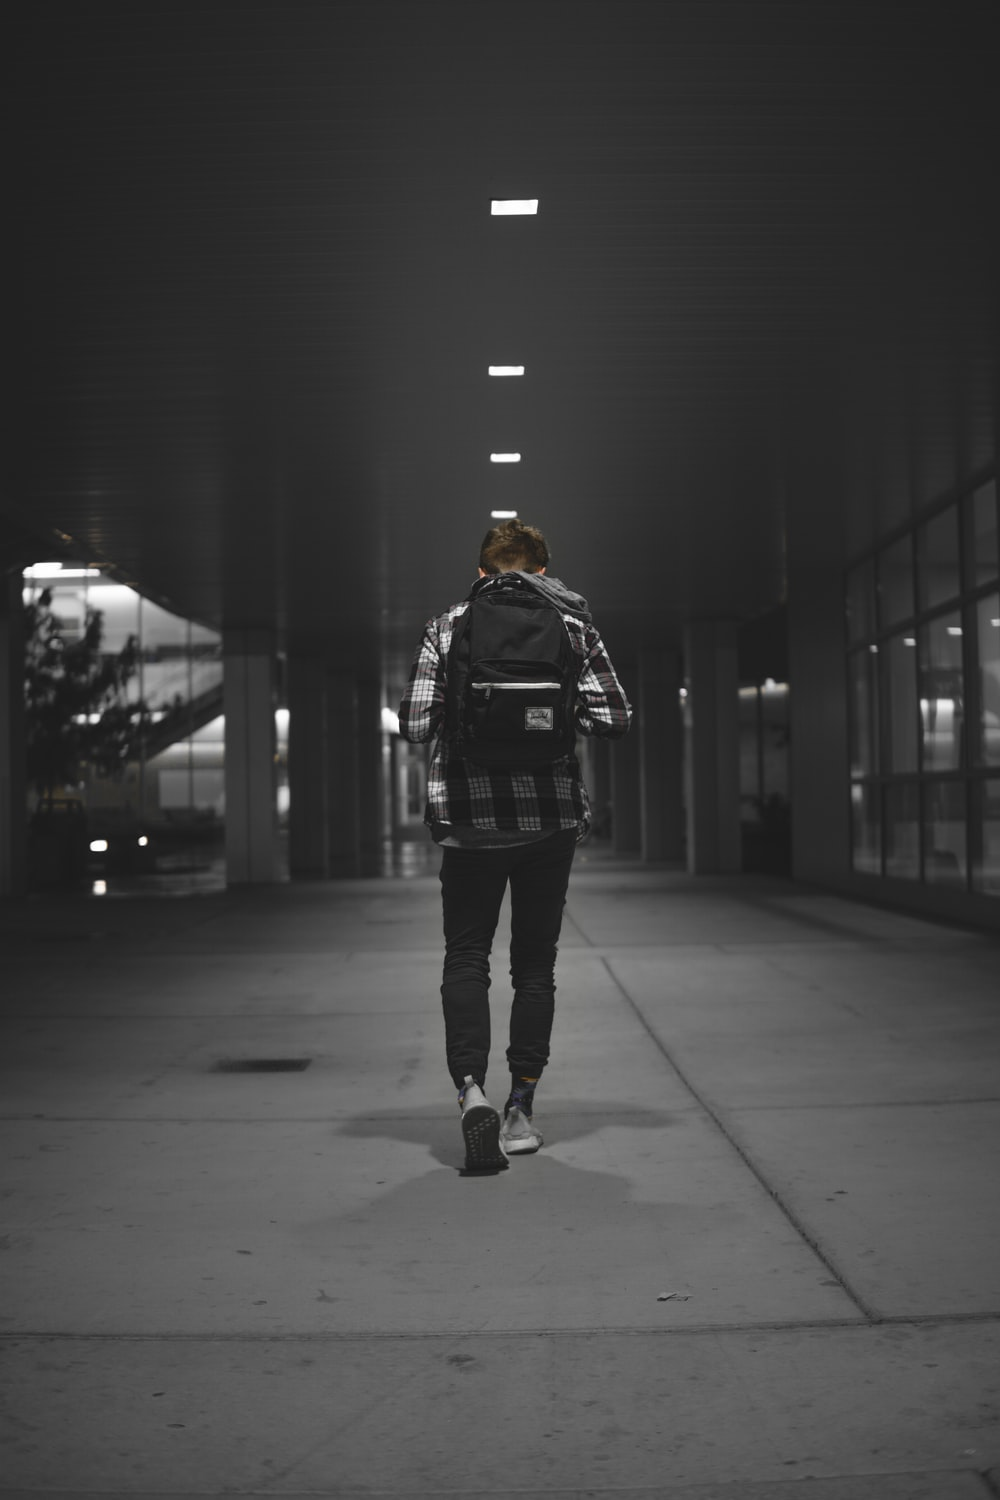 man with backpack walking alone on pathway